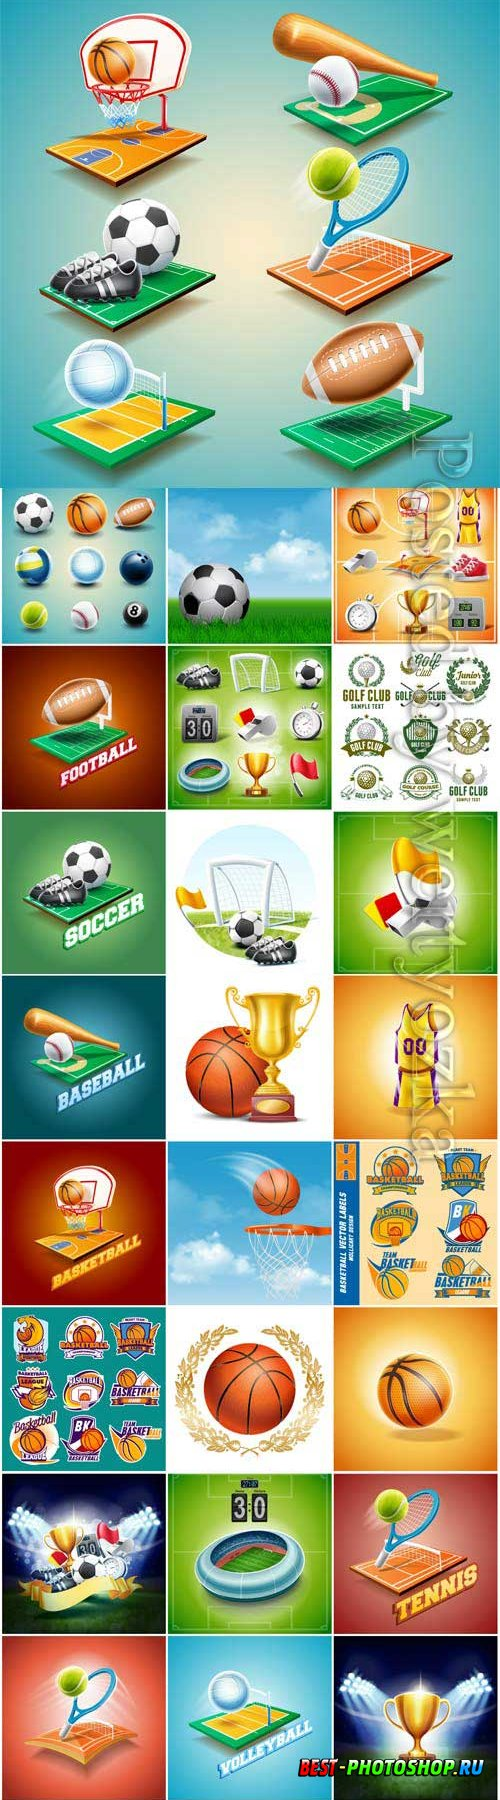 Sports items, balls and awards in vector